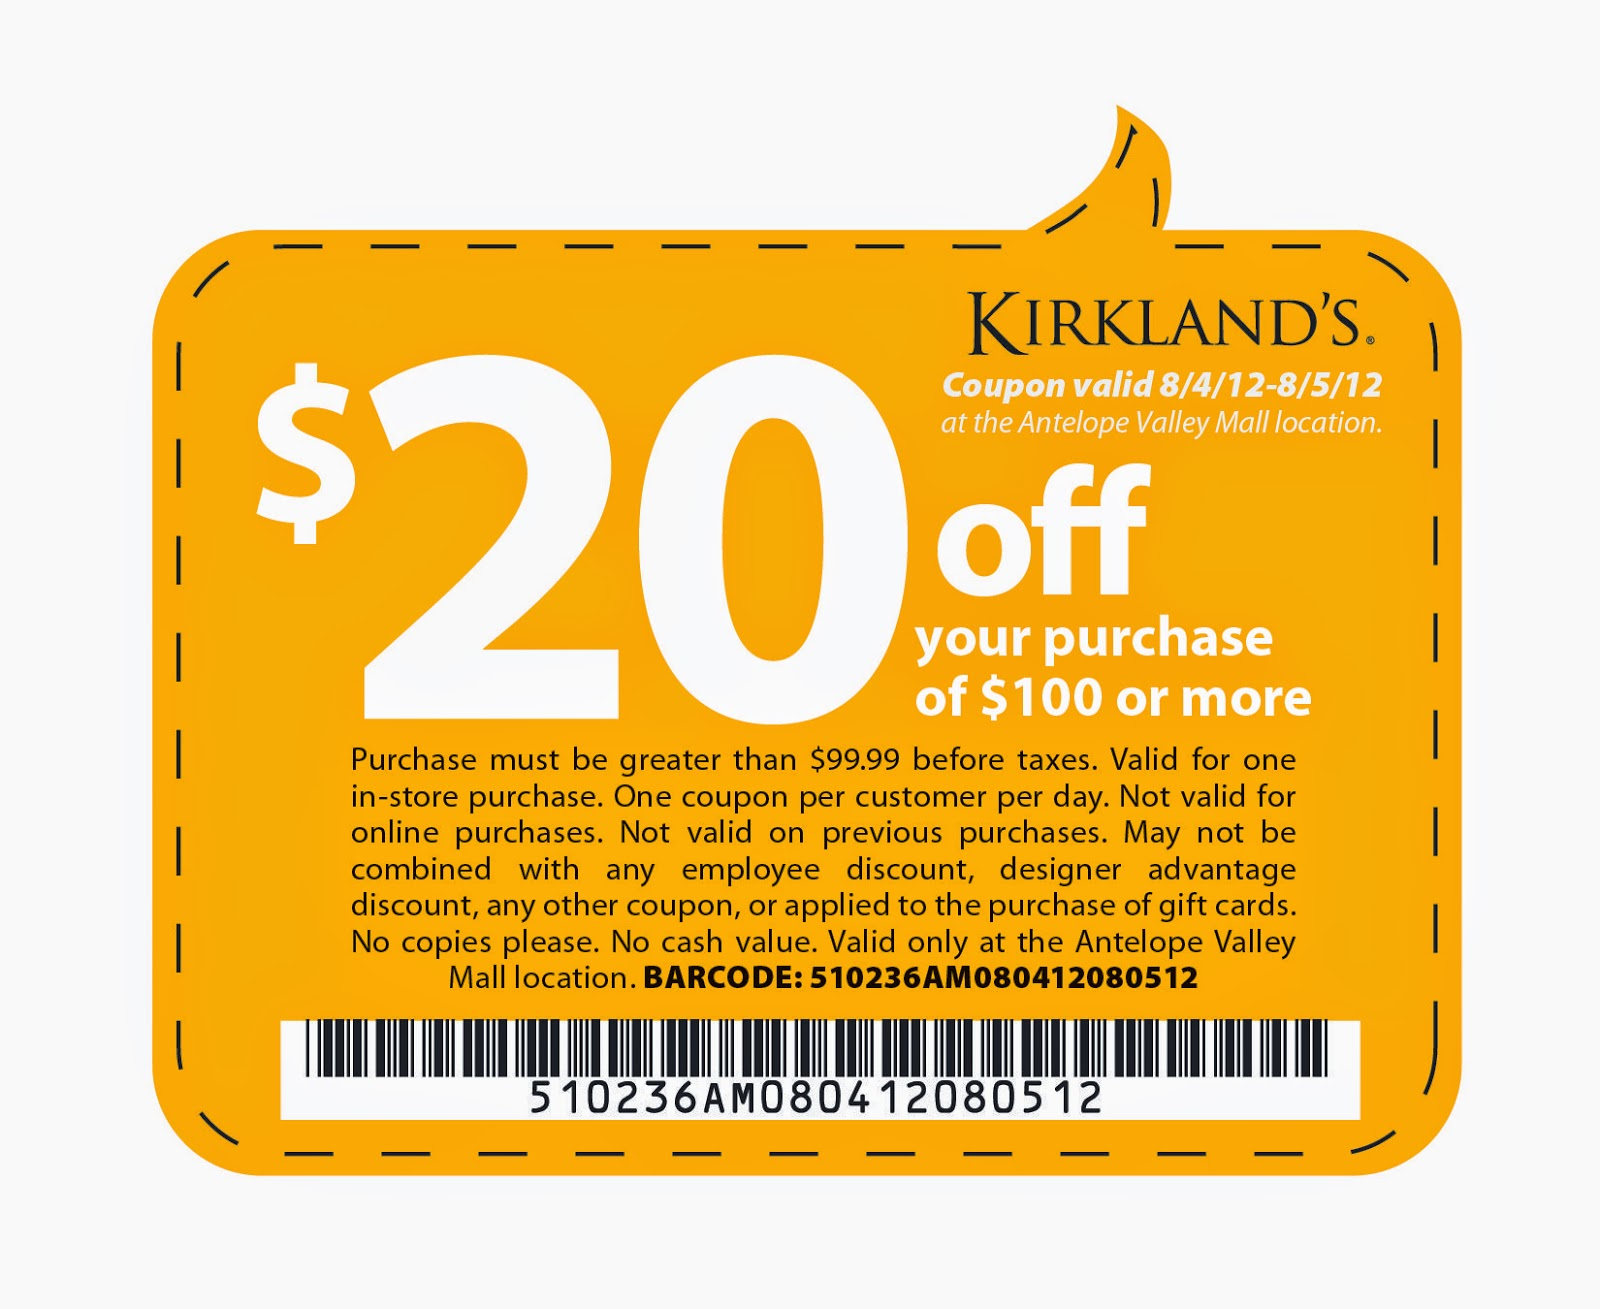 Kirklands rotate their printable coupons and promo codes offer every now and then but the most popular offers gets you at least $10 or % off your purchase (sometimes requires a purchase minimum).